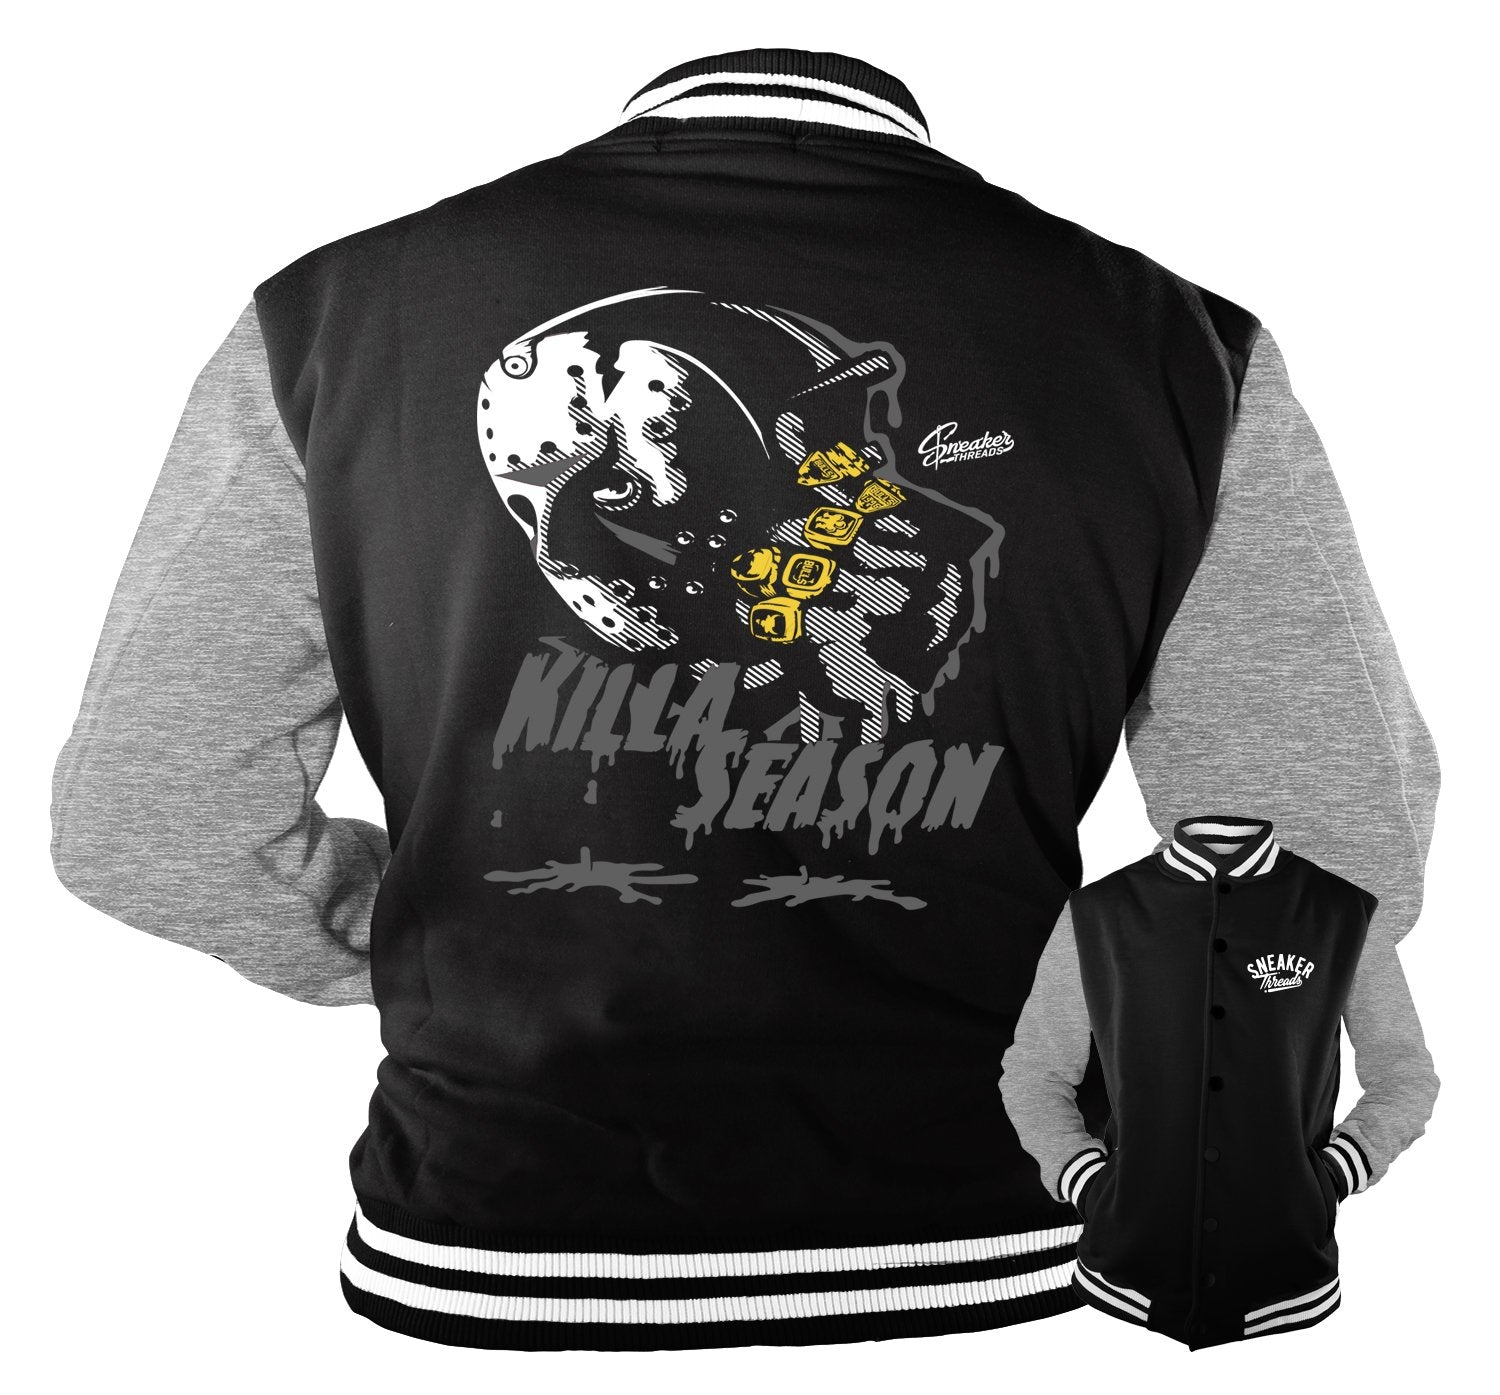 Jacket Collection Designed to match Jordan 4 black cat collection